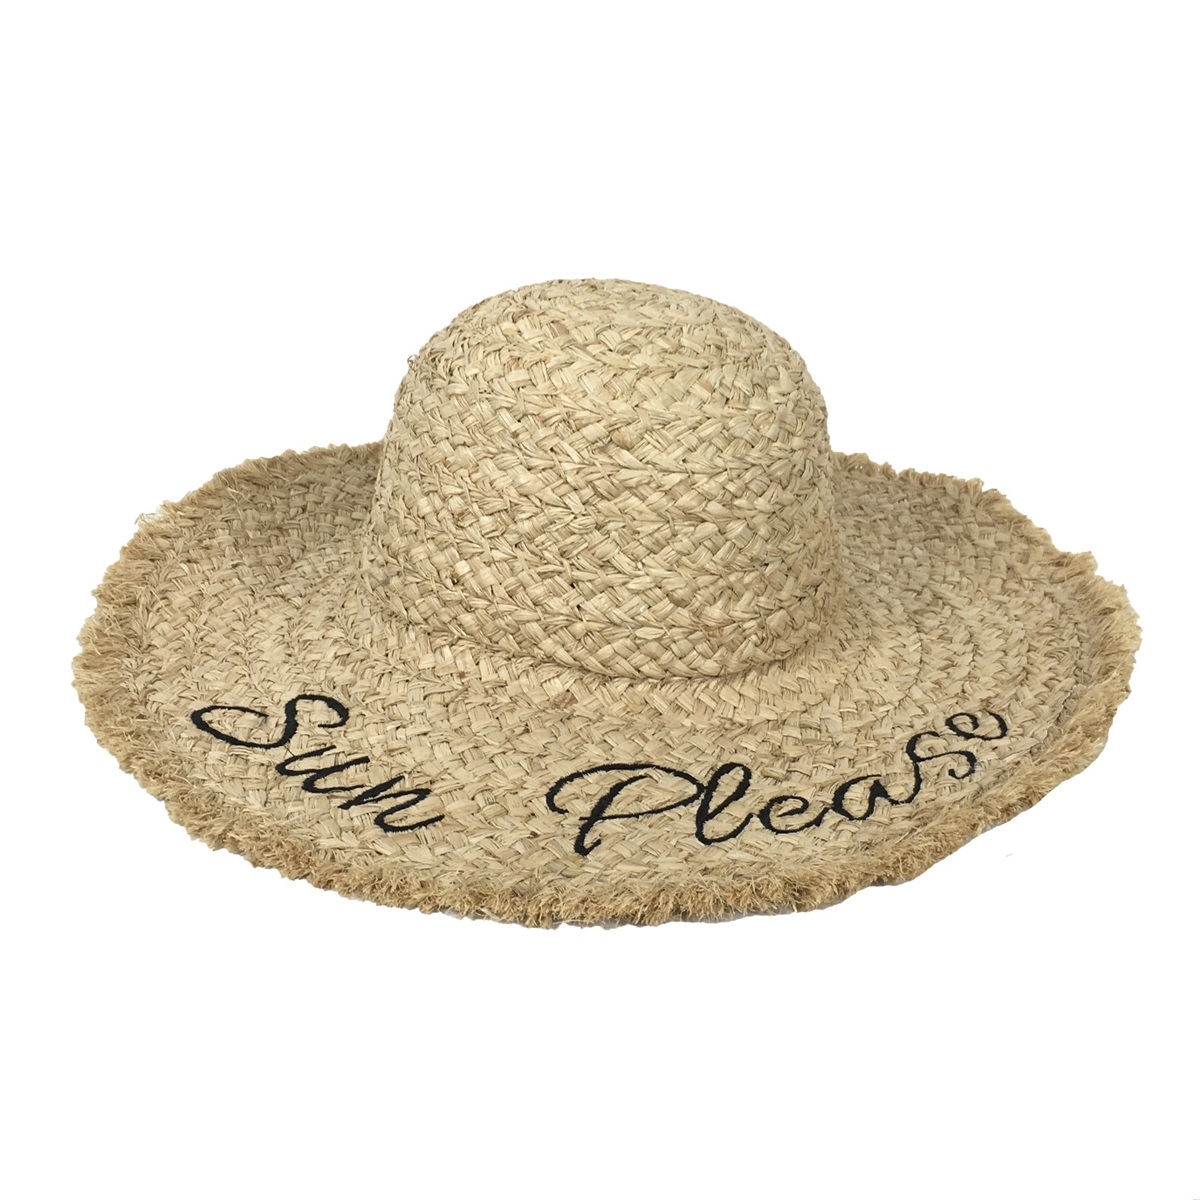 af6504f4 Fashion Culture 'Sun Please' Packable Woven Sun Hat, Natural